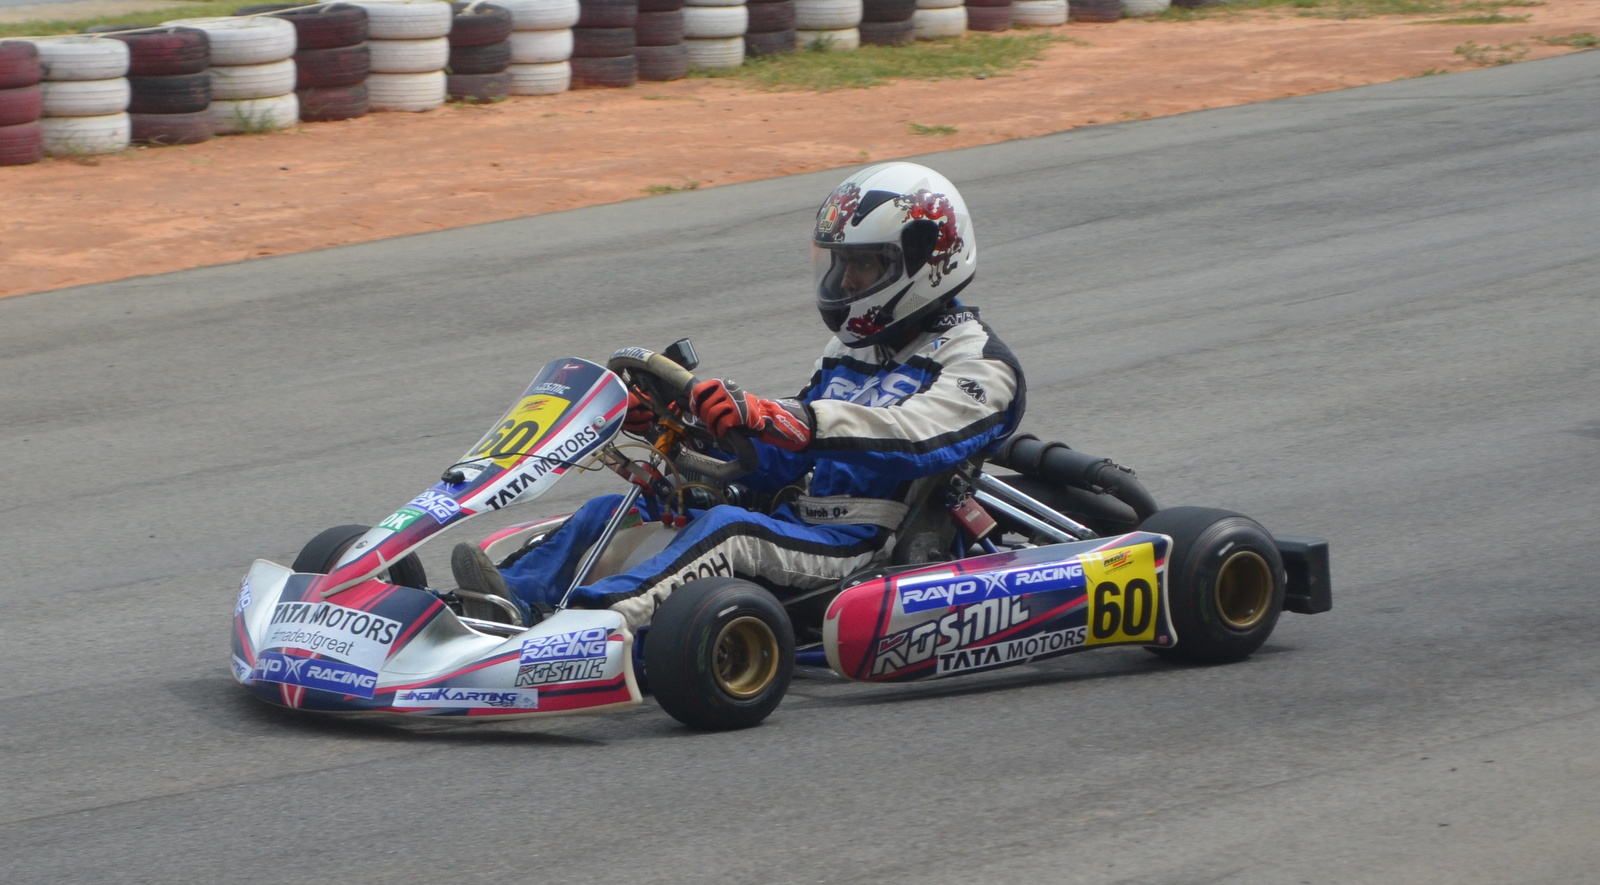 The championship leader, Aaroh Ravindra, en route to extending his lead